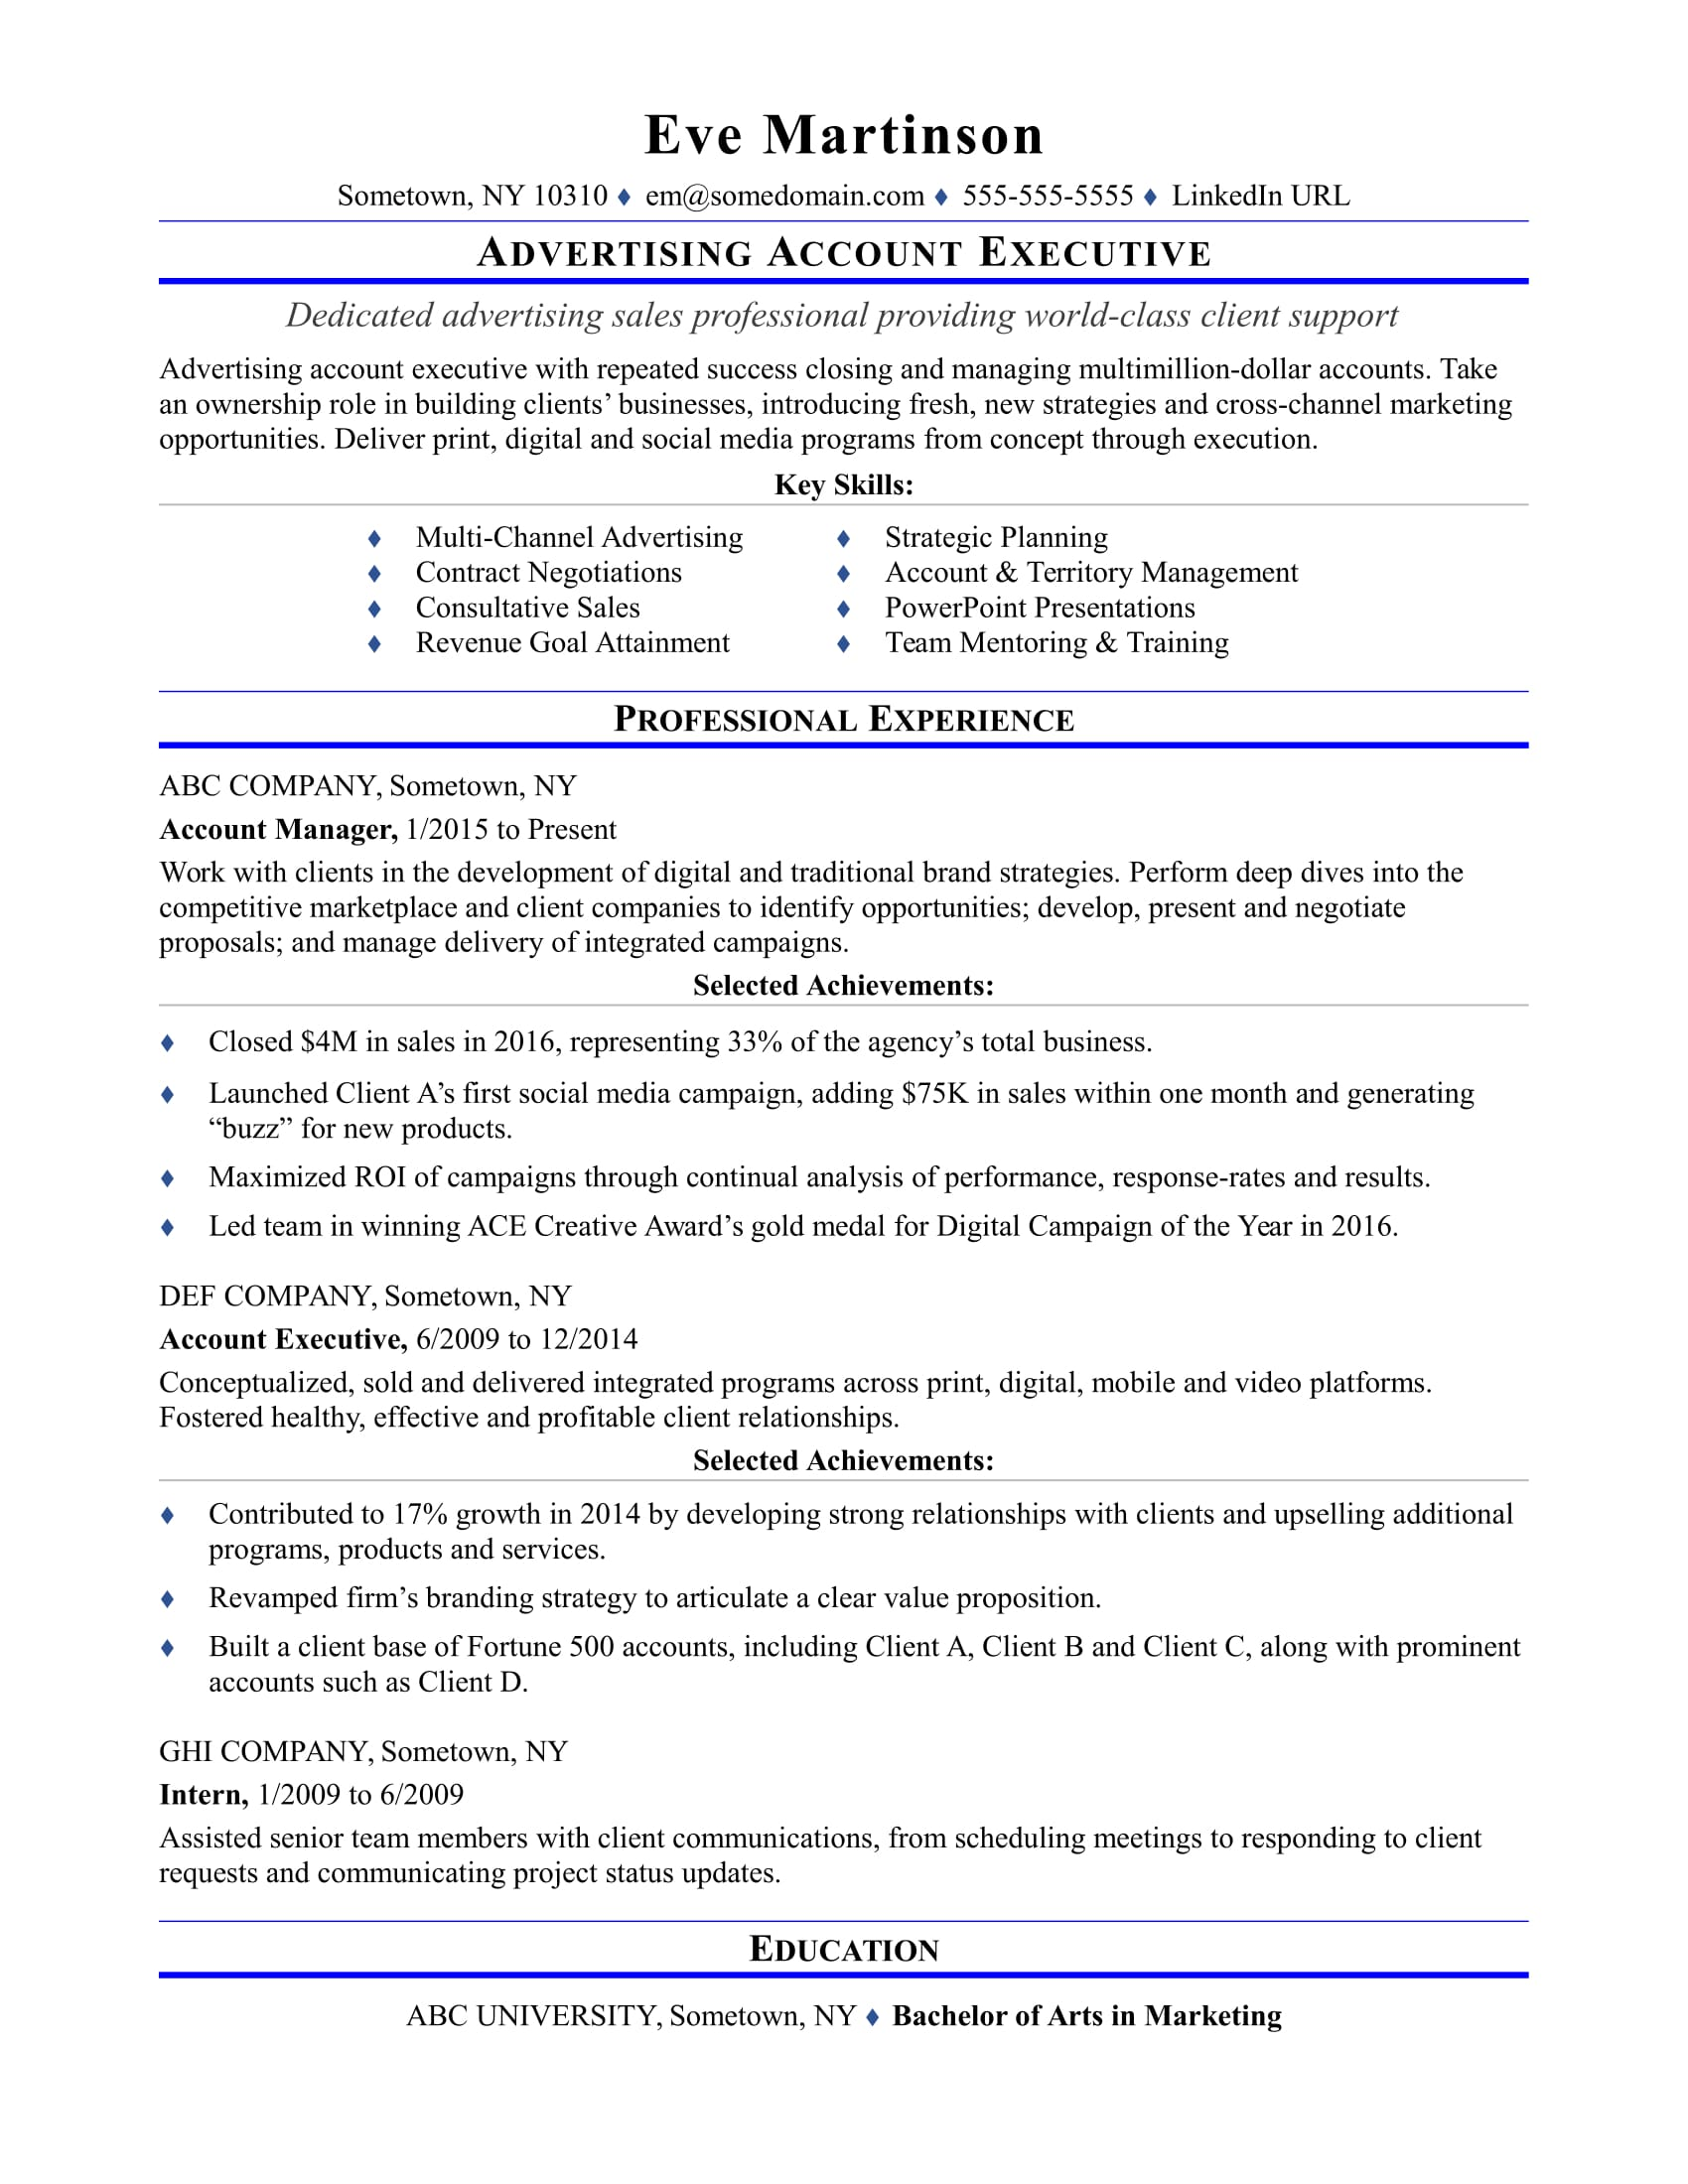 Sample Resume For An Advertising Account Executive  Executive Resume